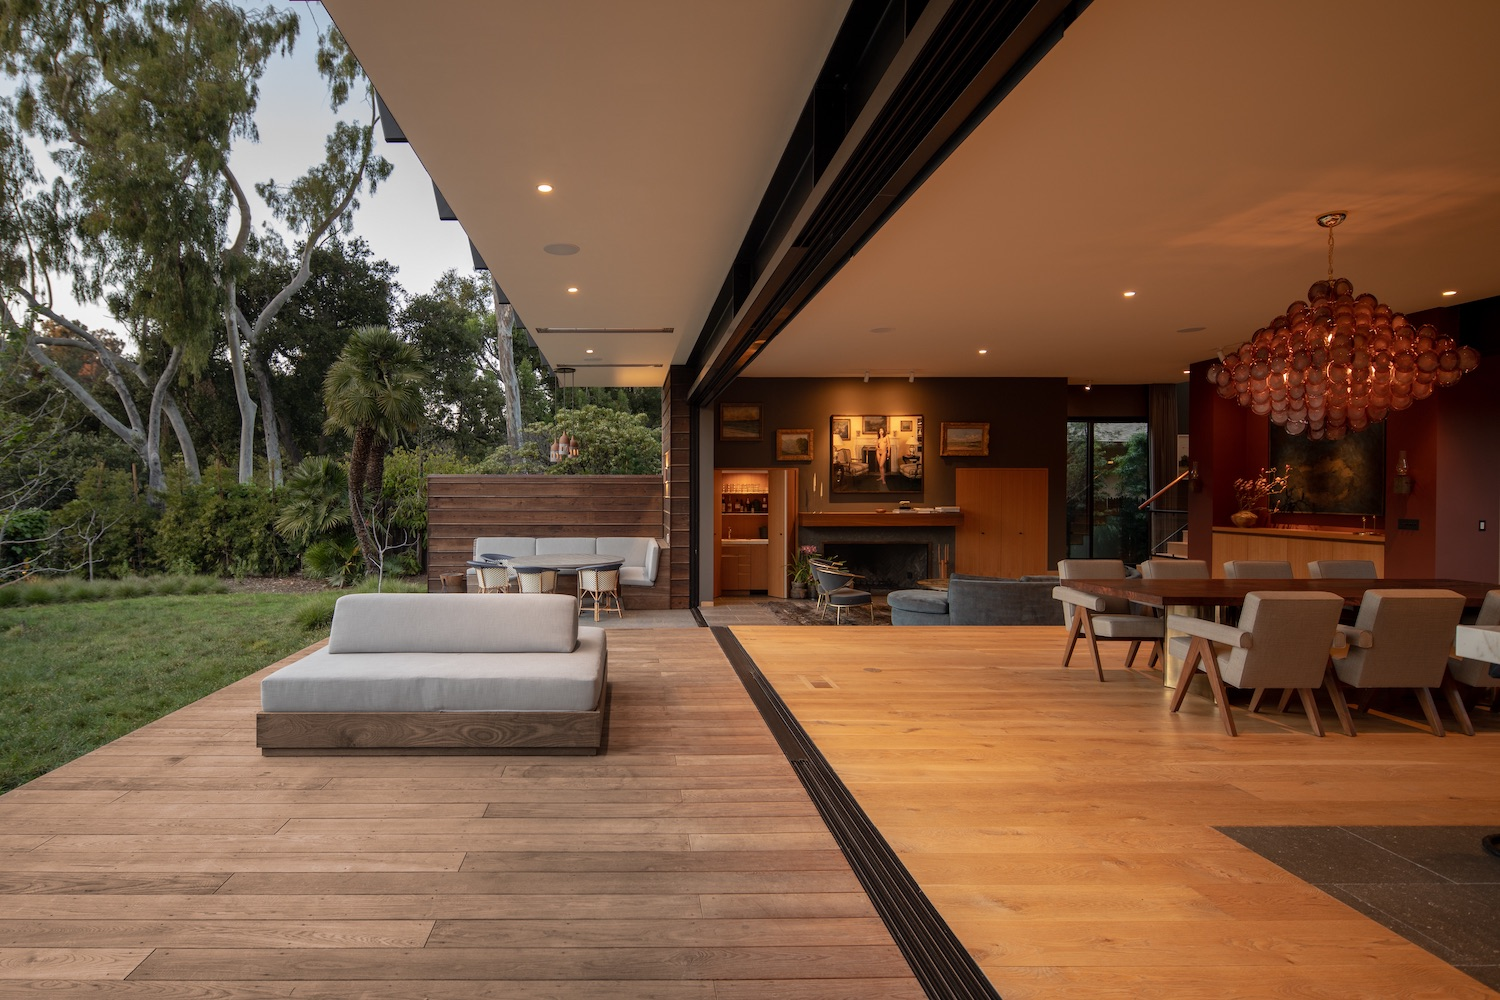 house with deck surrounded by eucalyptus trees